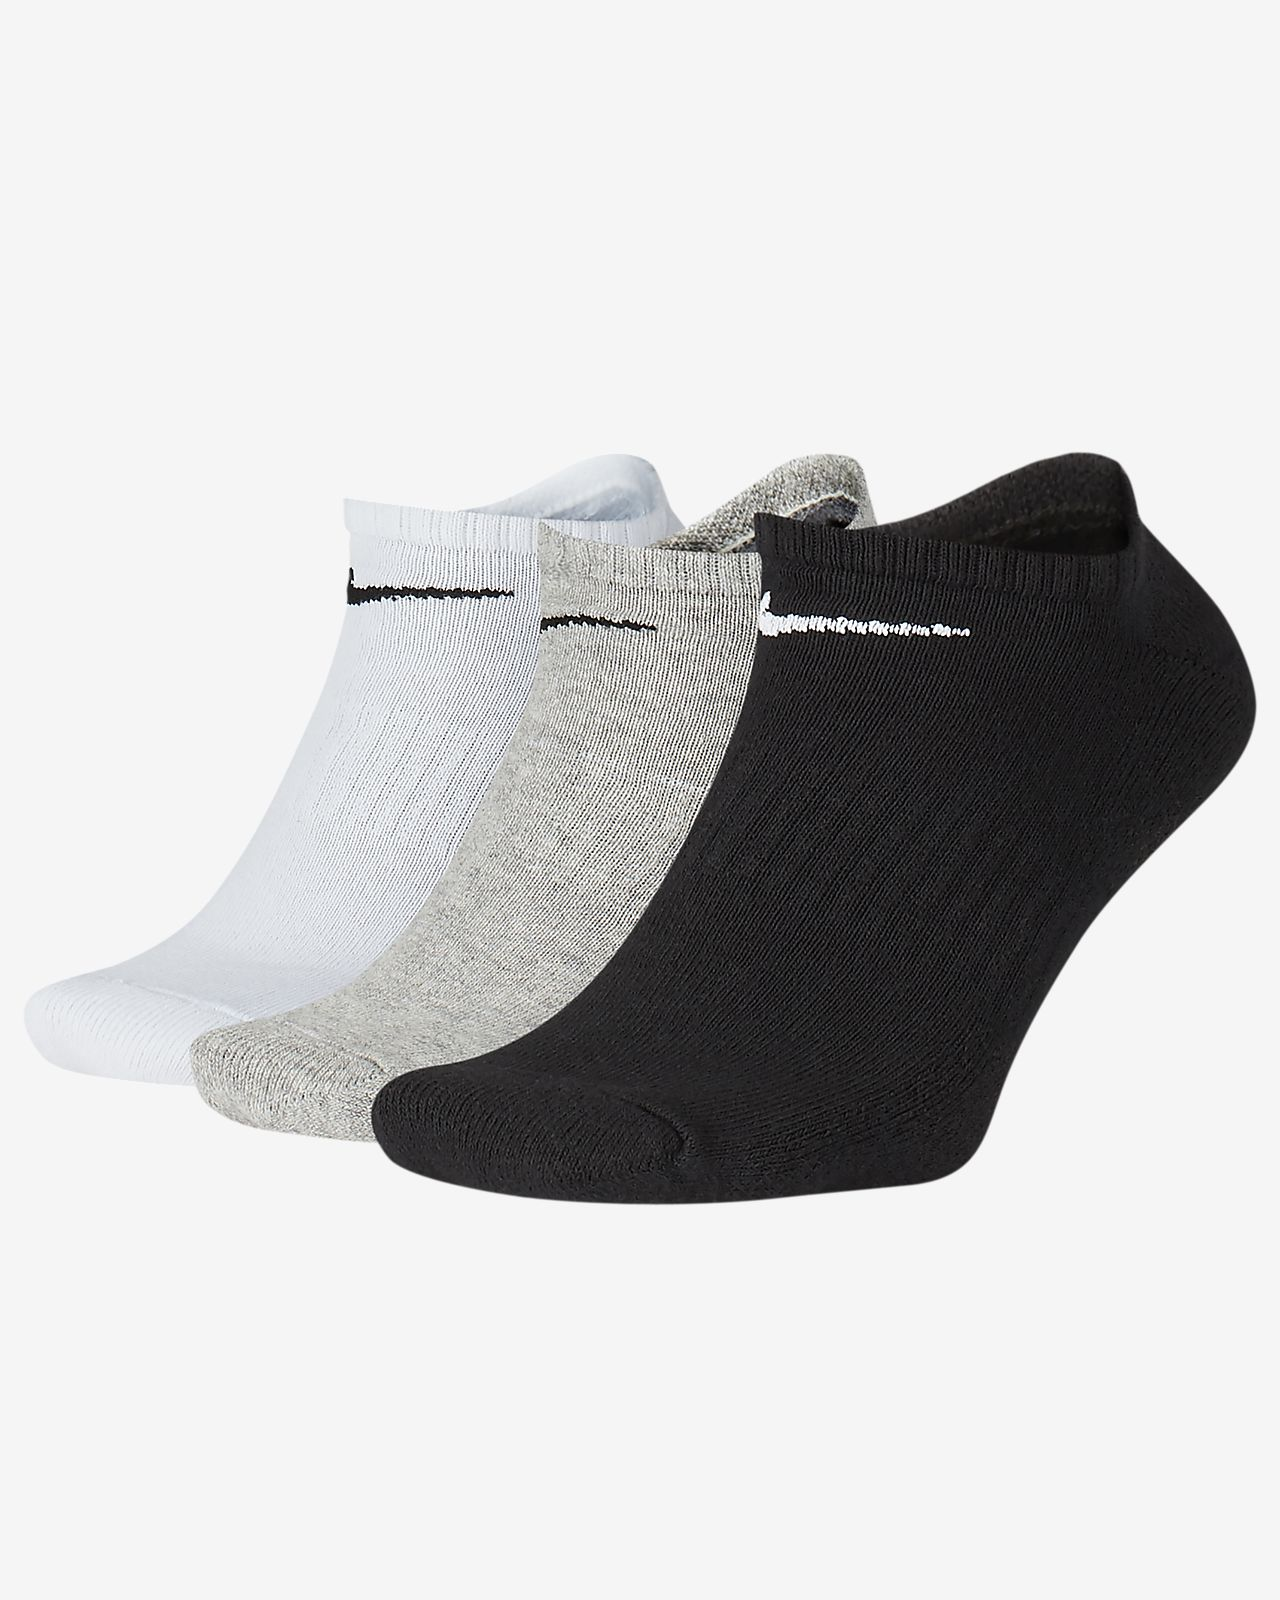 Nike Everyday Cushioned Training No-Show Socks (3 Pairs)